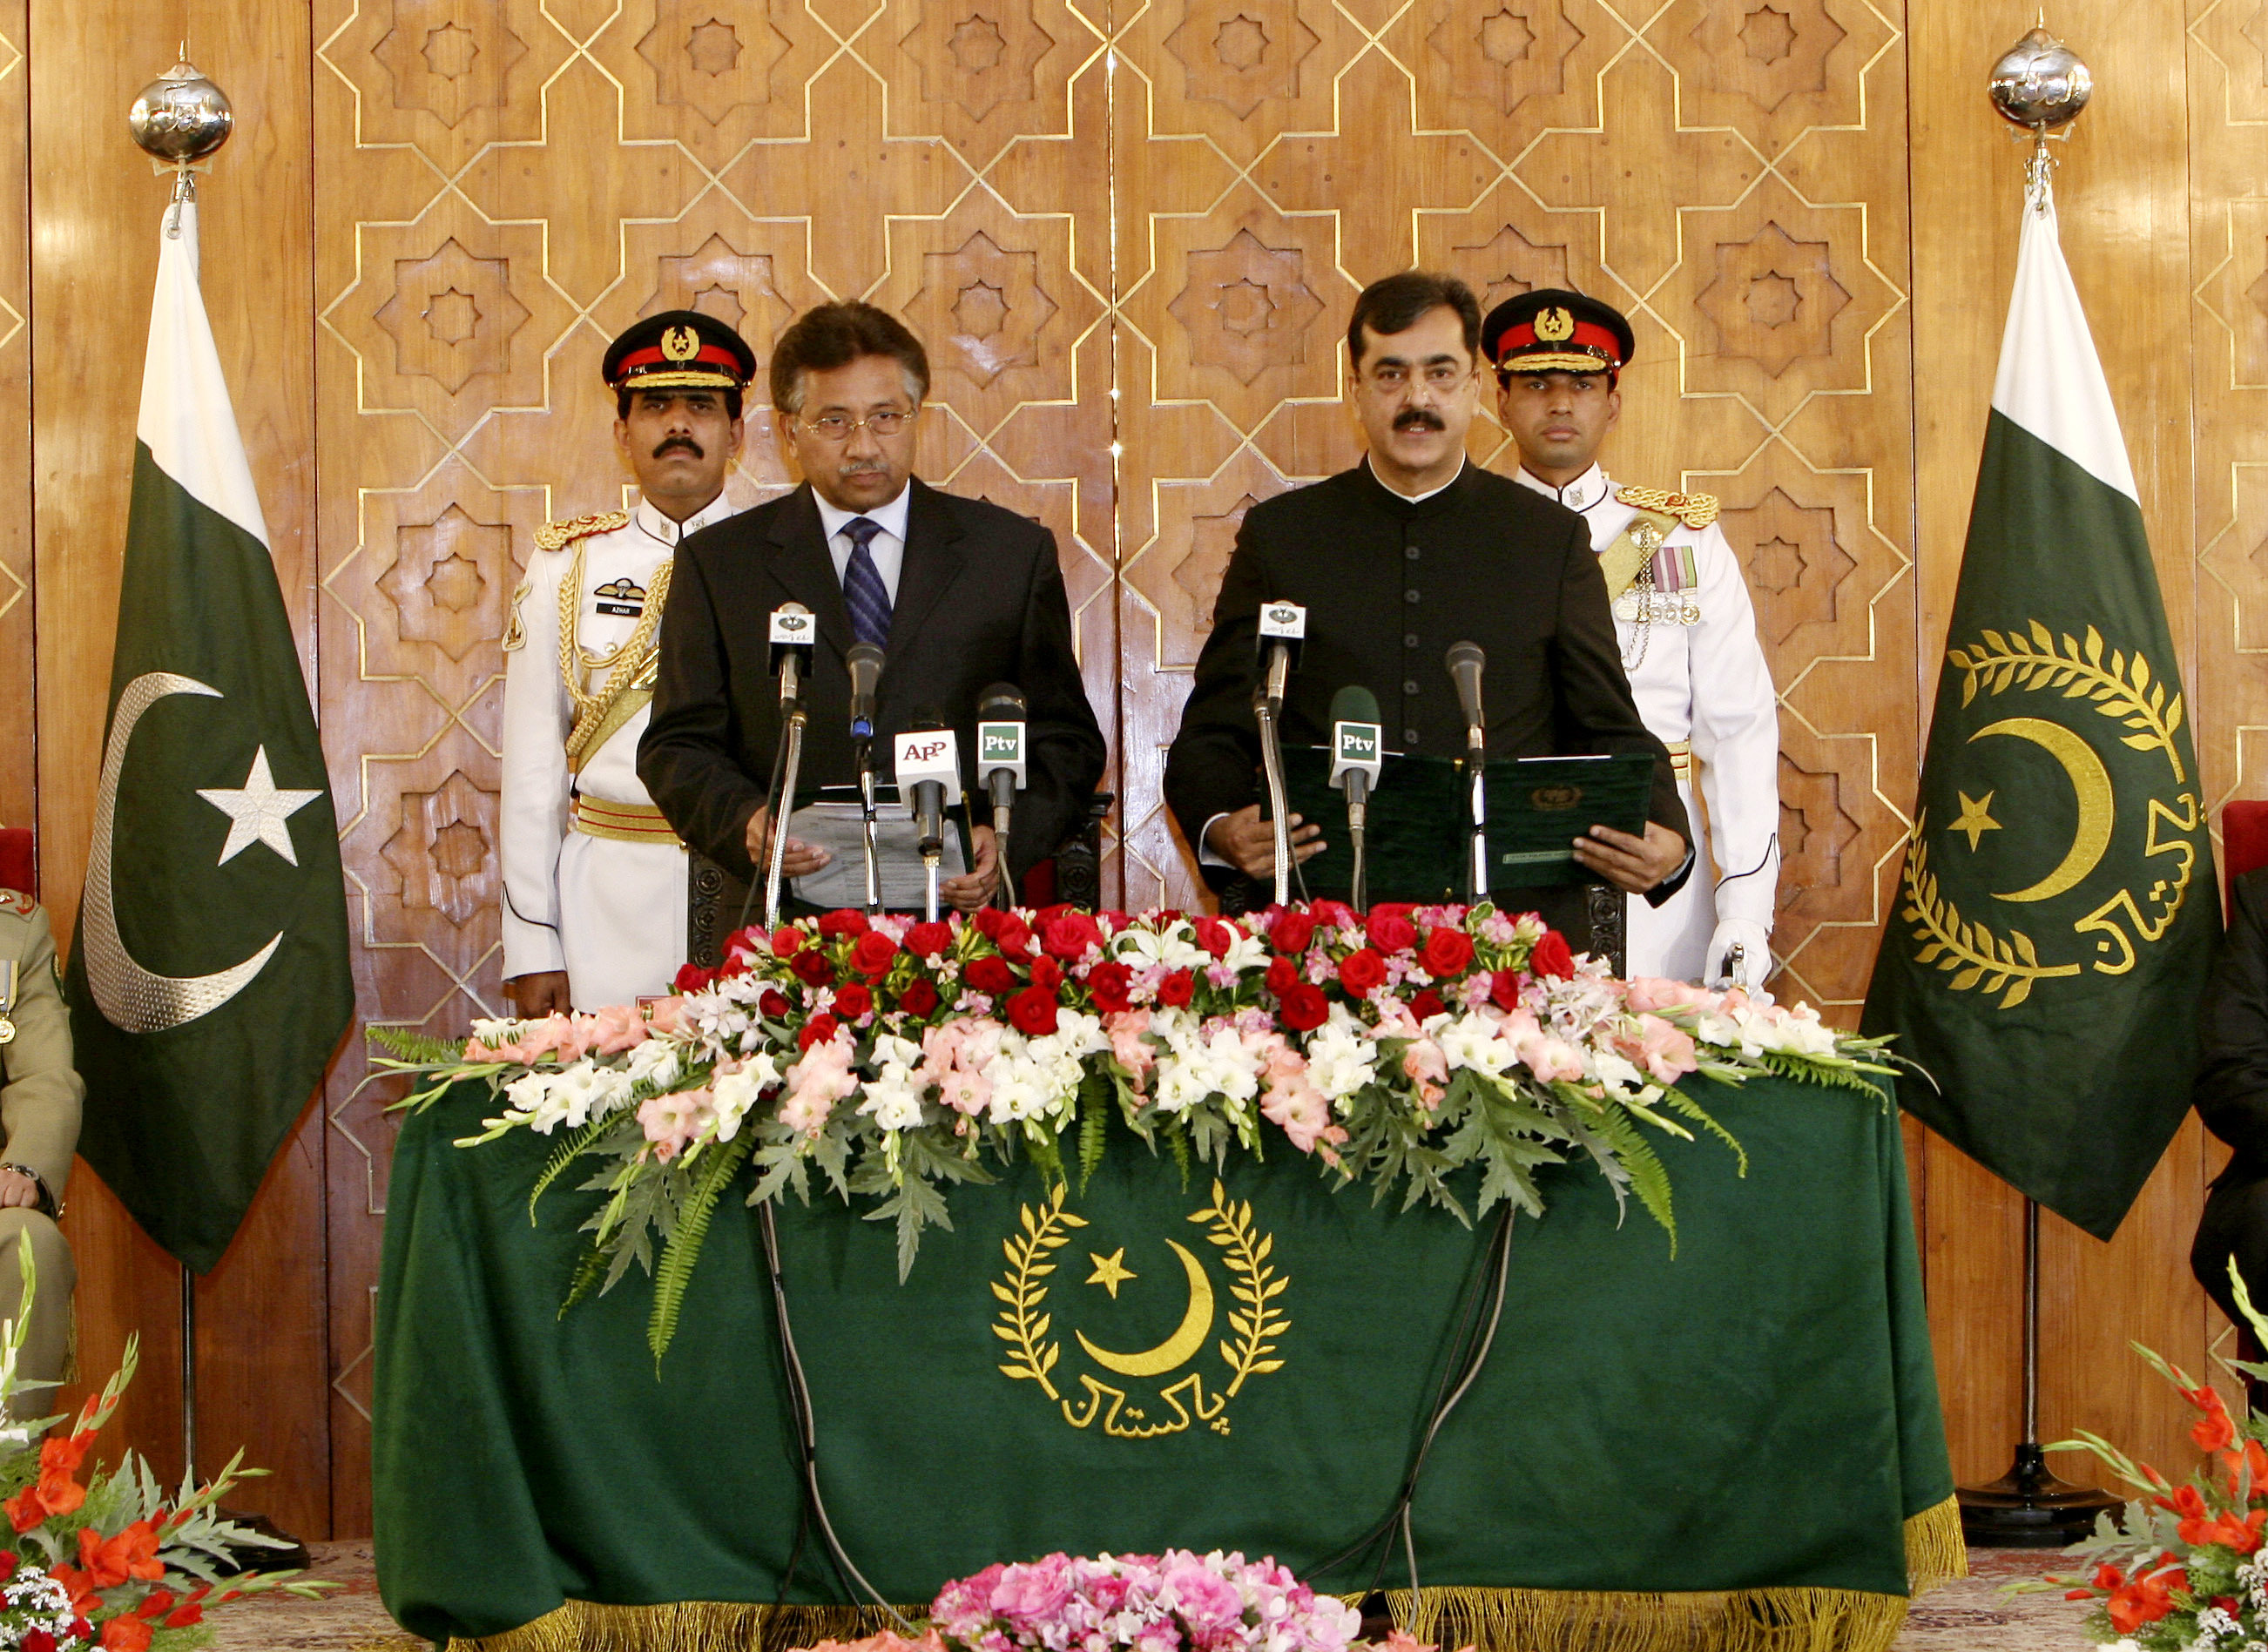 President Pervez Musharraf, front left, administers oath to newly-elected Prime Minister Yousaf Raza Gilani, front right, at Presidential Palace in Islamabad, March 25, 2008. — AP